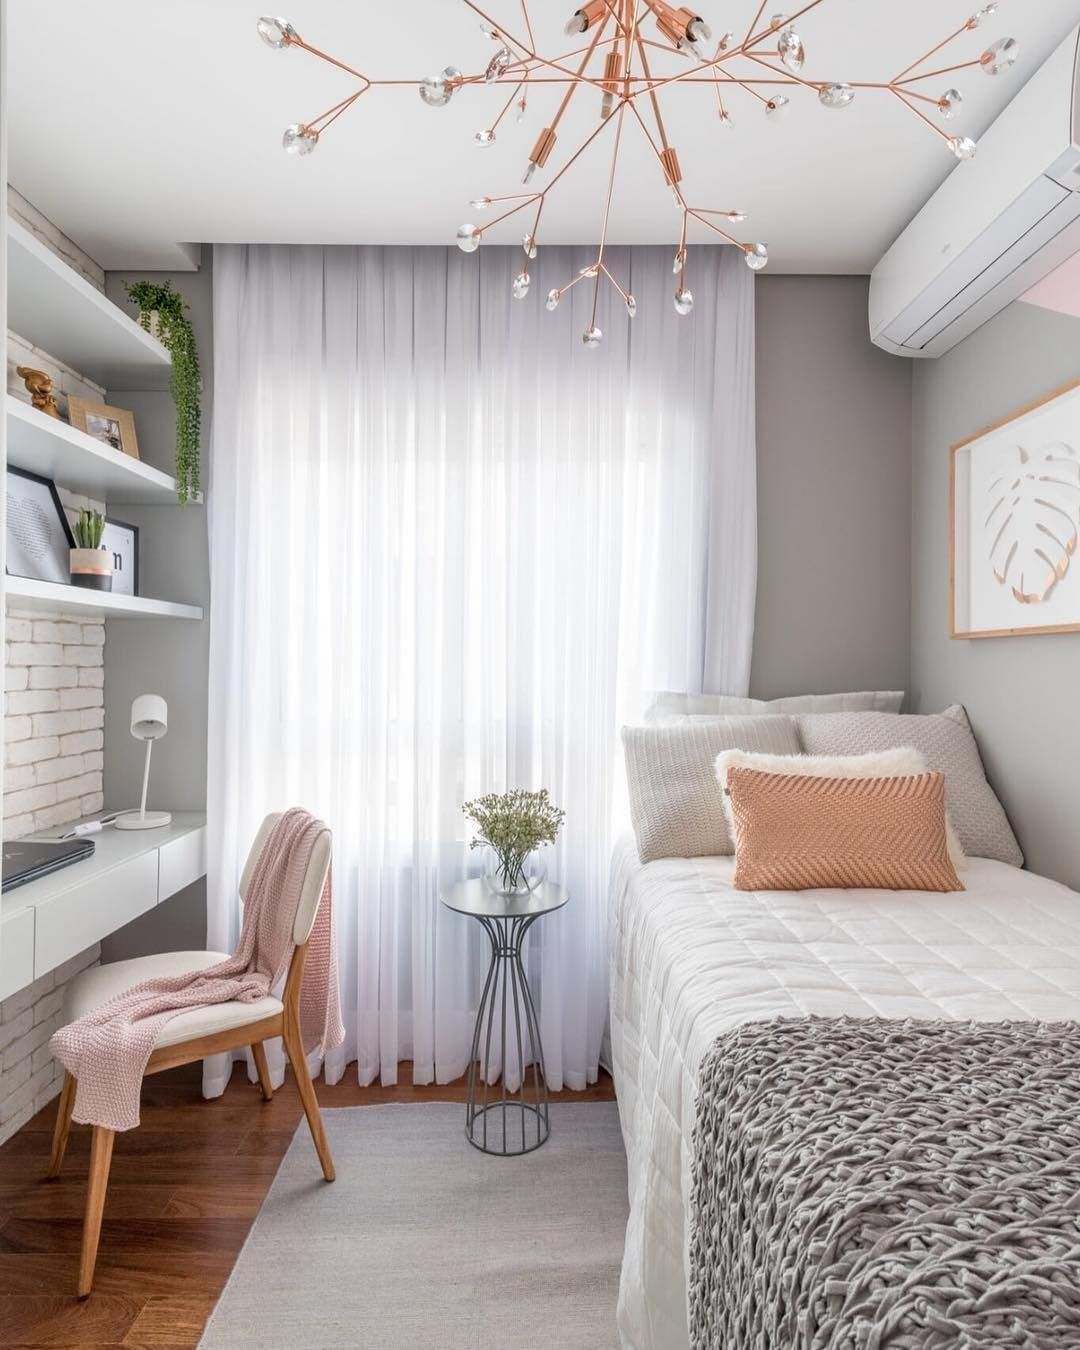 25 Small Bedroom Ideas That Are Look Stylishly & Space Saving #smallbedroominspirations Brilliant small b 25 Small Bedroom Ideas That Are Look Stylishly & Space Saving #smallbedroominspirations Brilliant small bedroom ideas for teenage girl #smallbedrooms #bedroom #bedroomdecor #bedroomideas #bedroomdesign #bedroomdecoratingideas